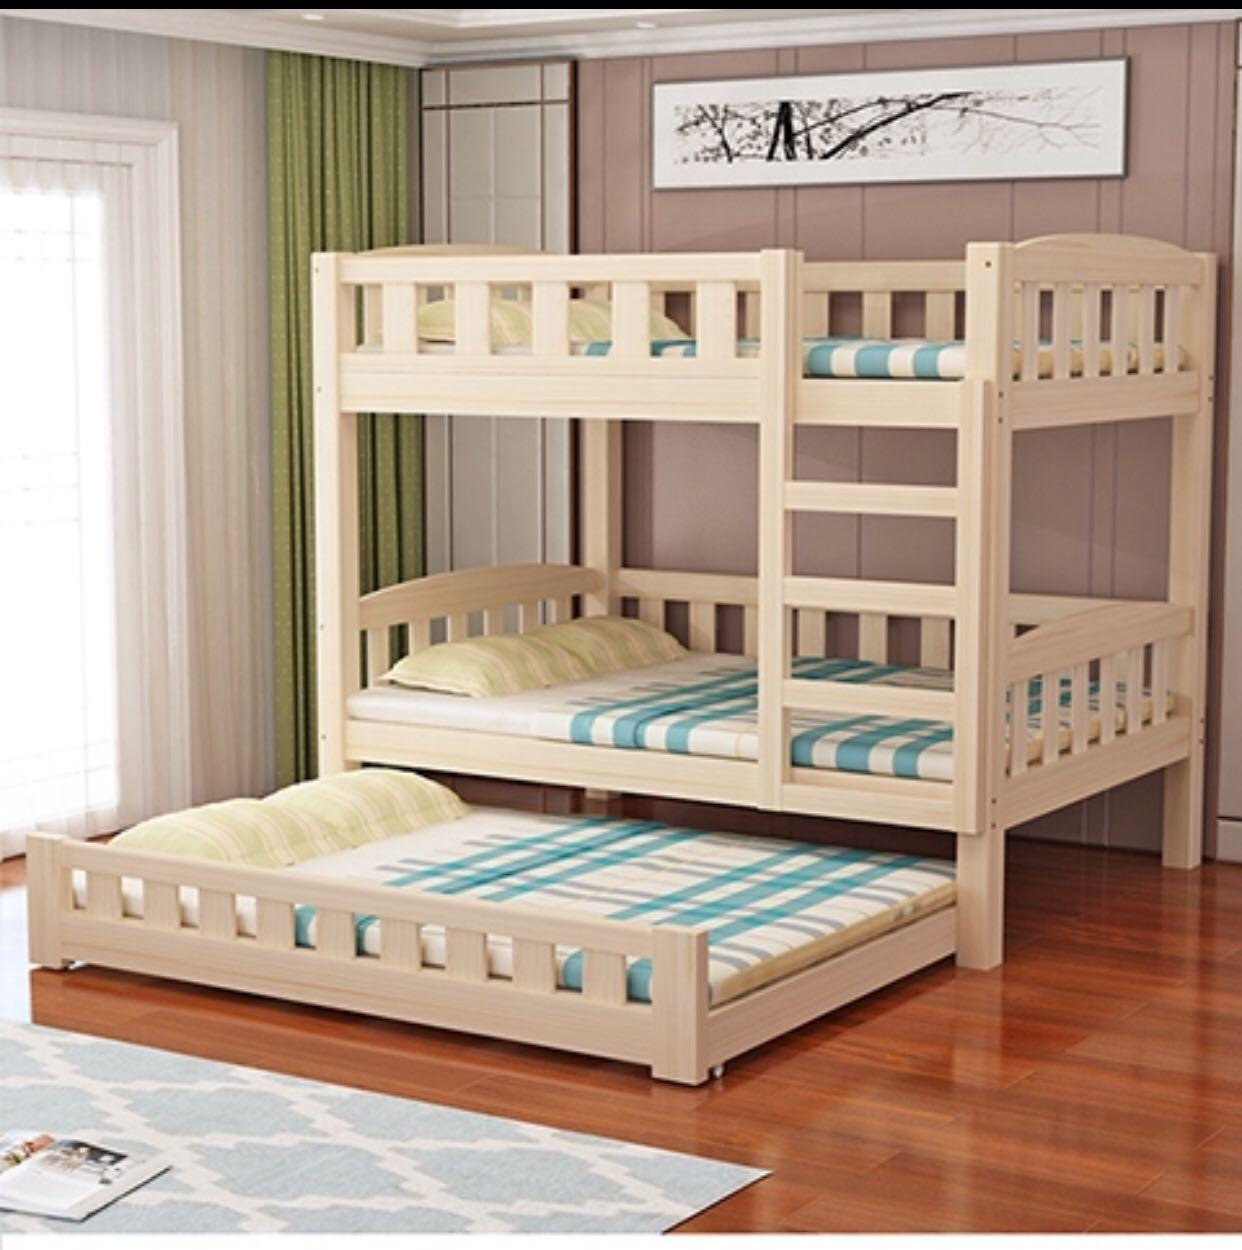 Preorder Triple Bed Frame Pull Out Bed And Bunk Bed Furniture Beds Mattresses On Carousell